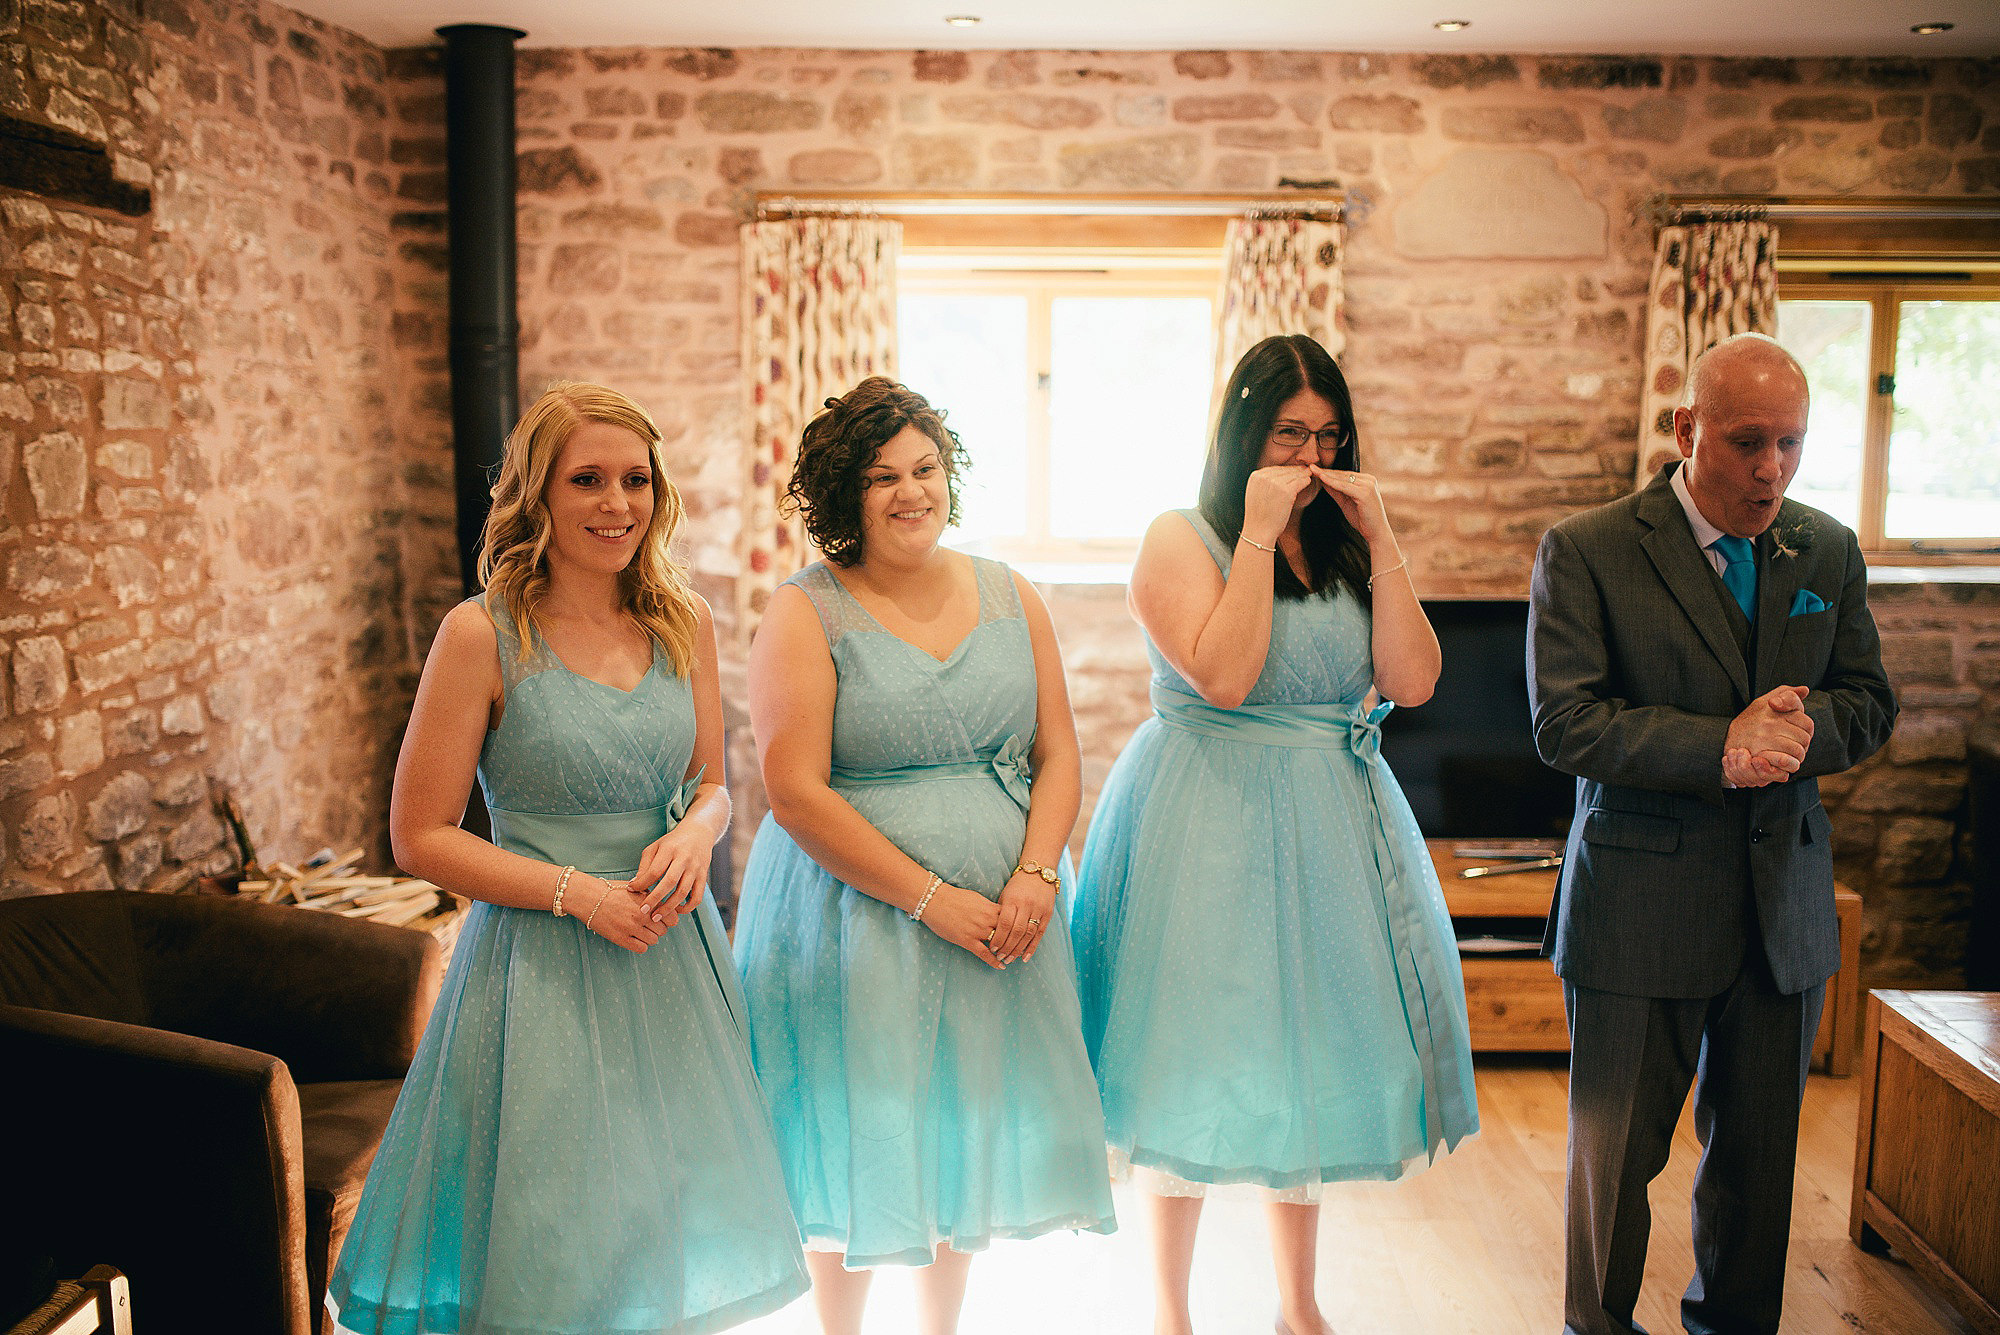 Happy emotional bridesmaids